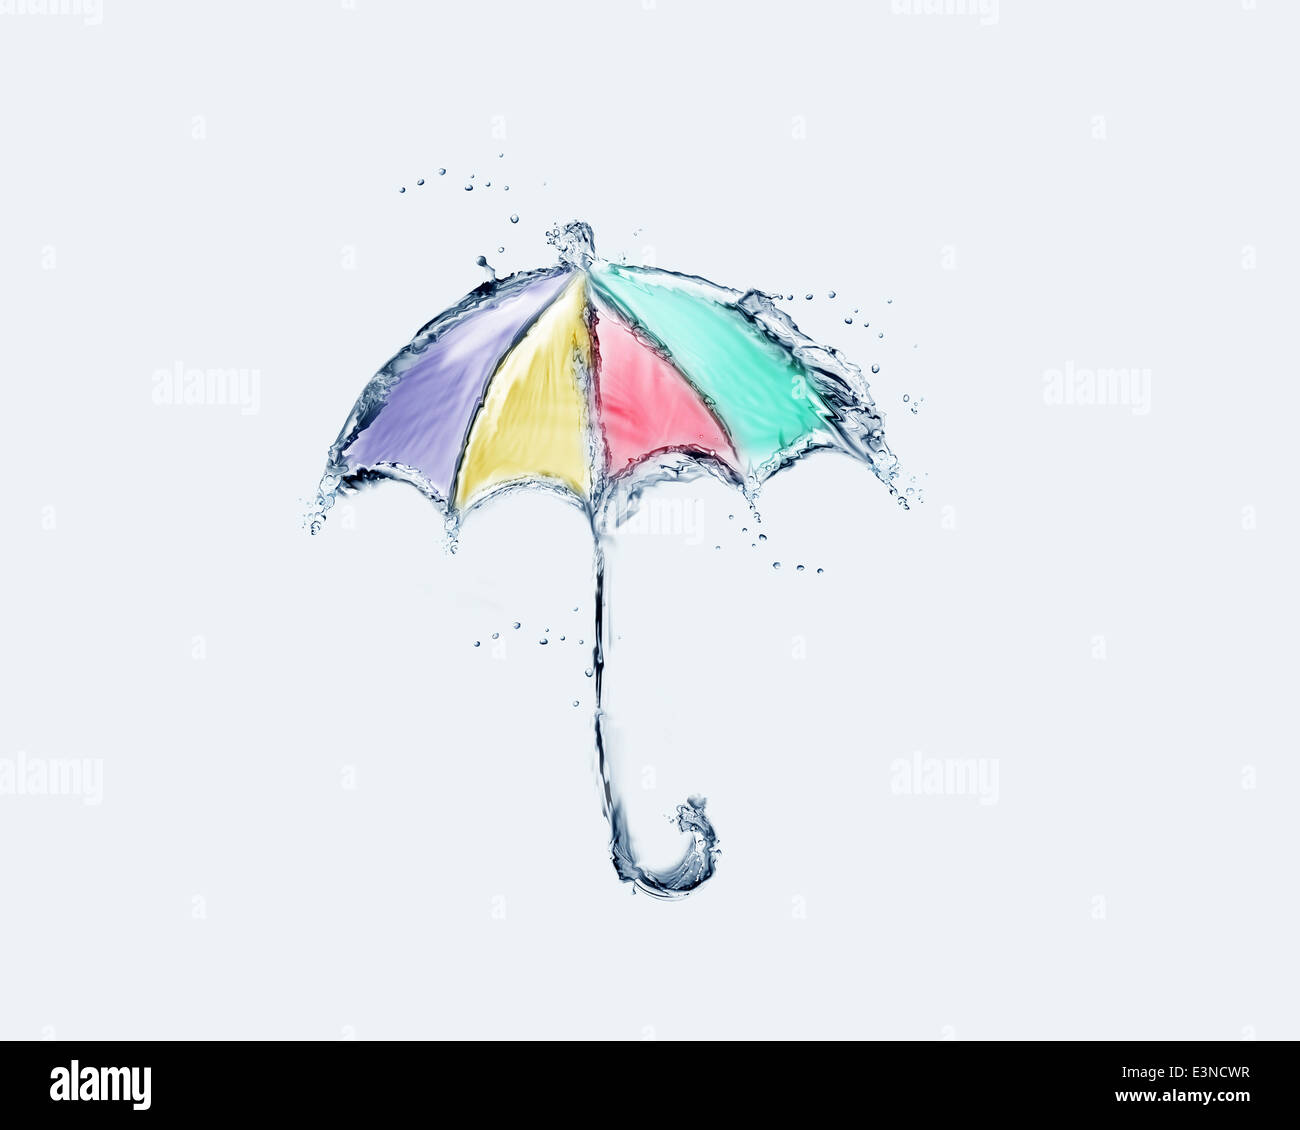 A colored umbrella made of water. - Stock Image